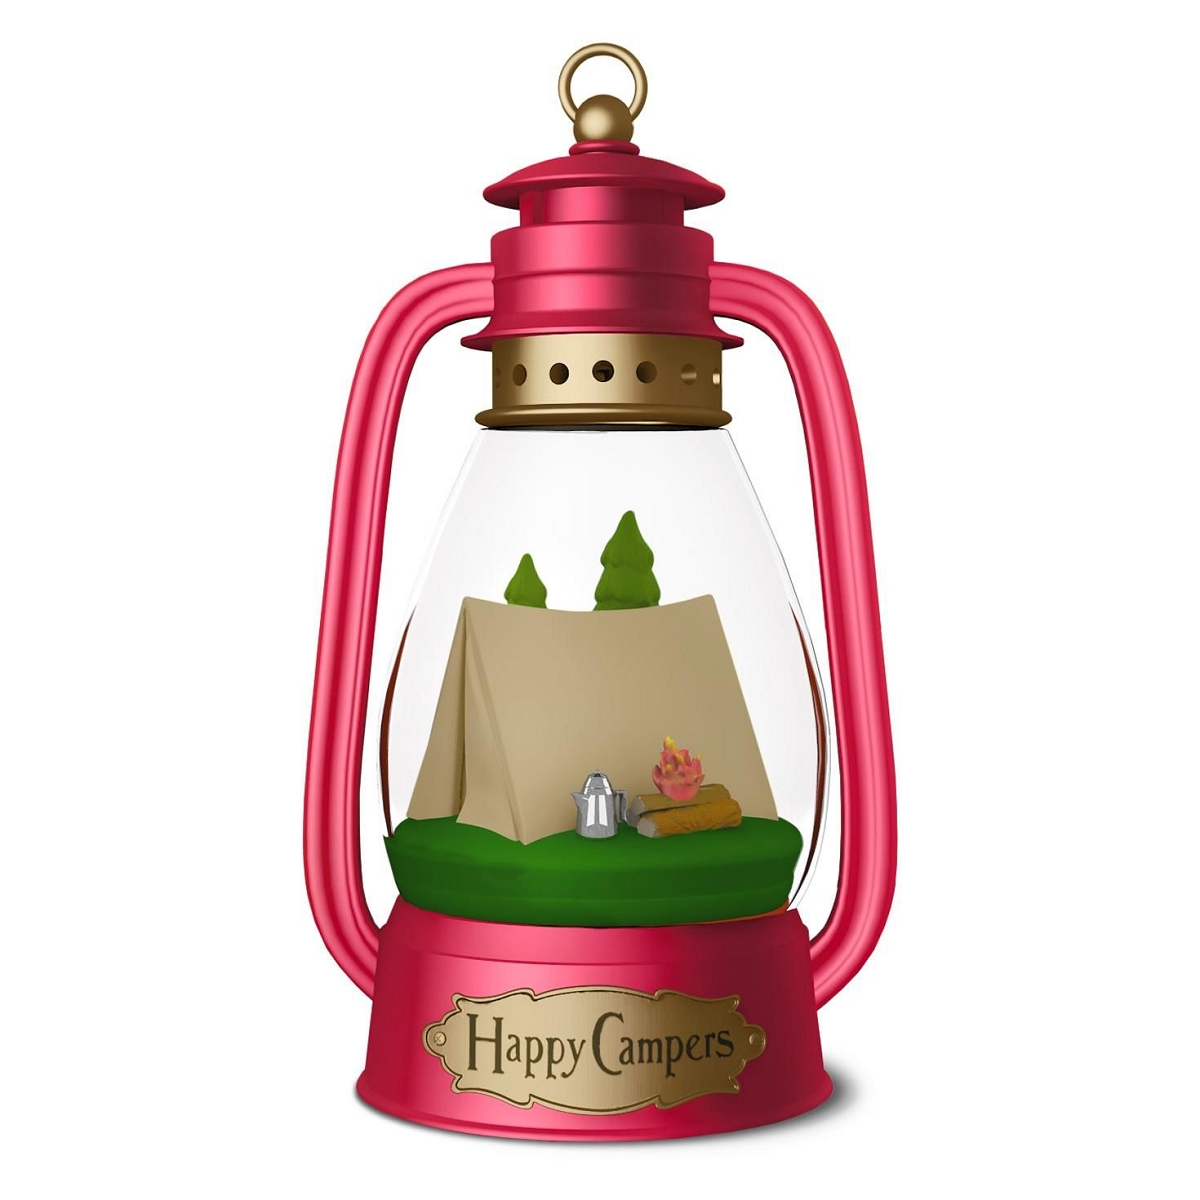 2016 Happy Campers Hallmark Keepsake Ornament  Hooked on